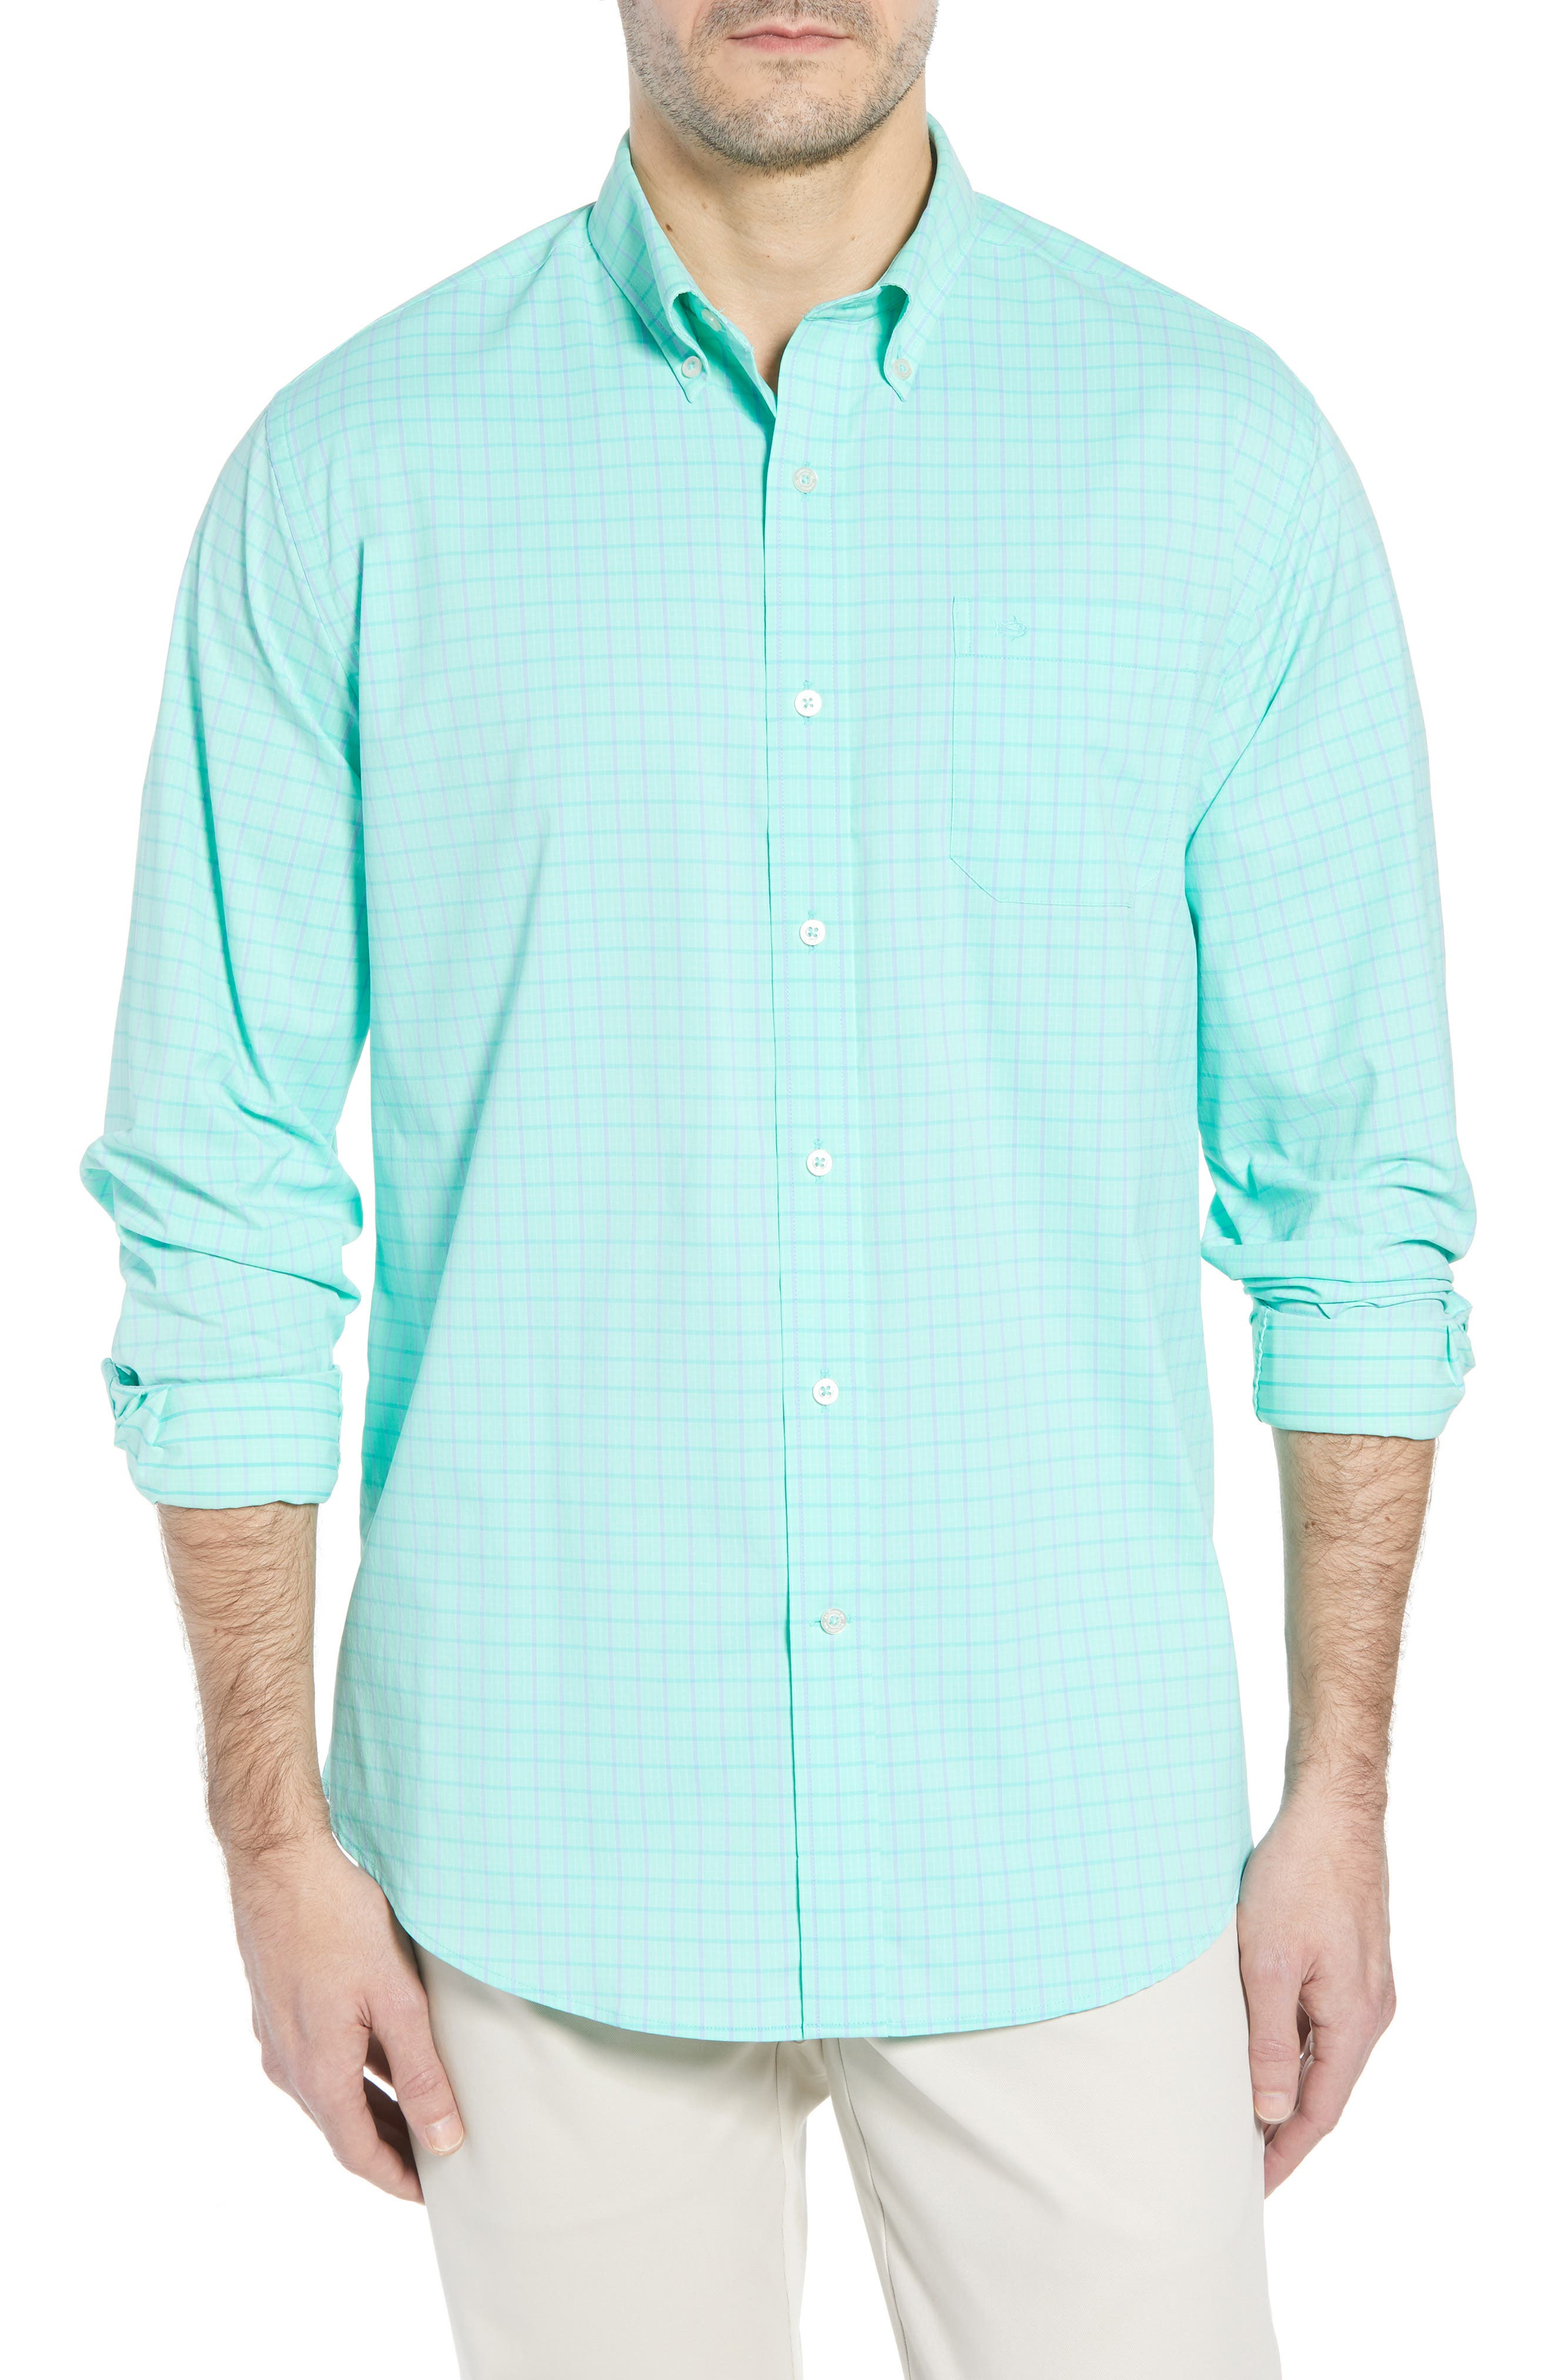 Alternate Image 1 Selected - Southern Tide Intercoastal Gordia Plaid Sport Shirt